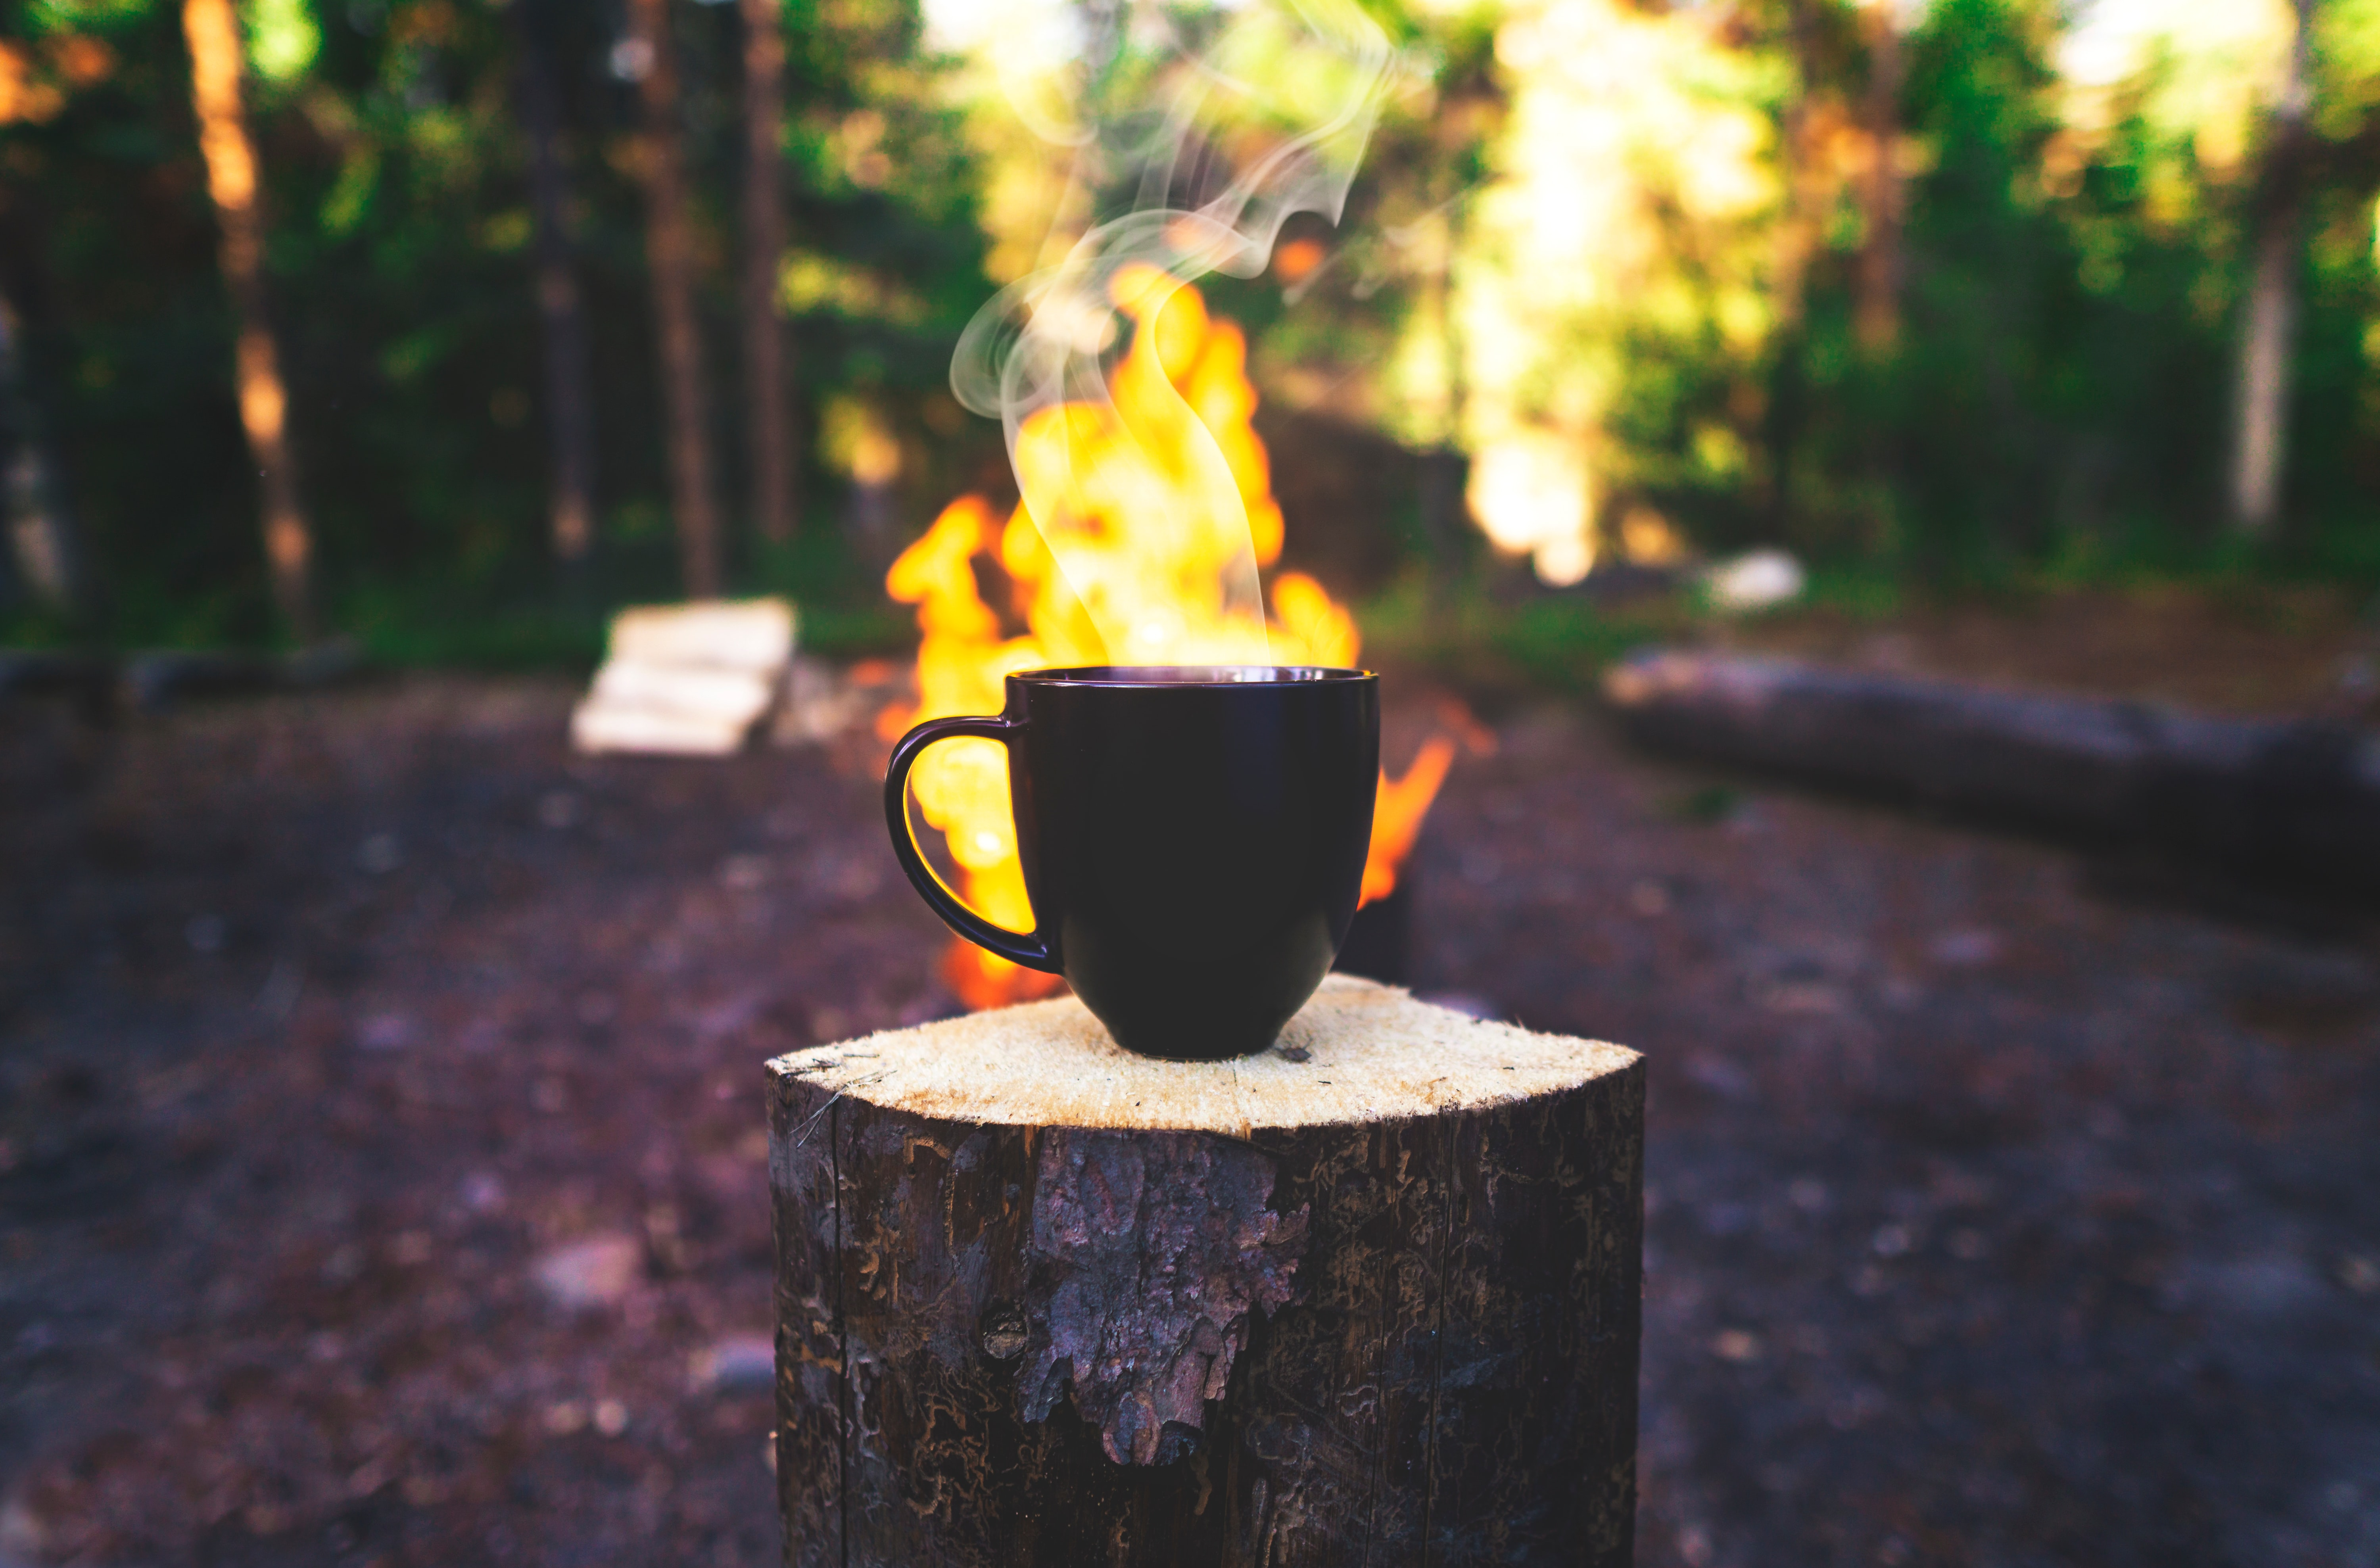 104928 download wallpaper Camping, Bonfire, Miscellanea, Miscellaneous, Cup, Drink, Beverage, Steam, Campsite, Mug screensavers and pictures for free